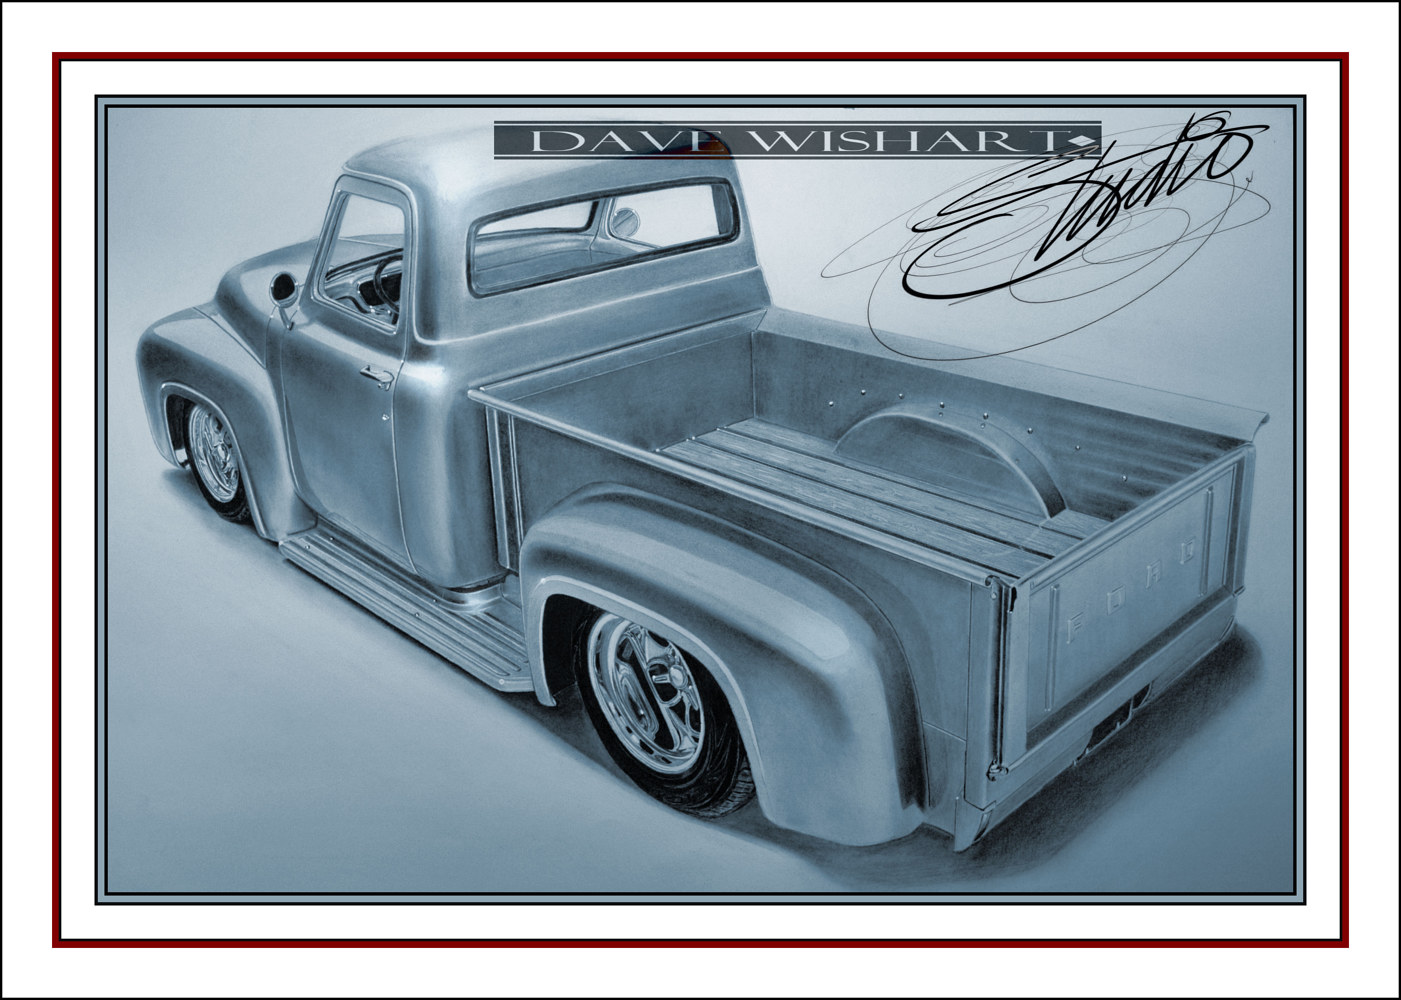 '53 Ford F100 by Dave Wishart